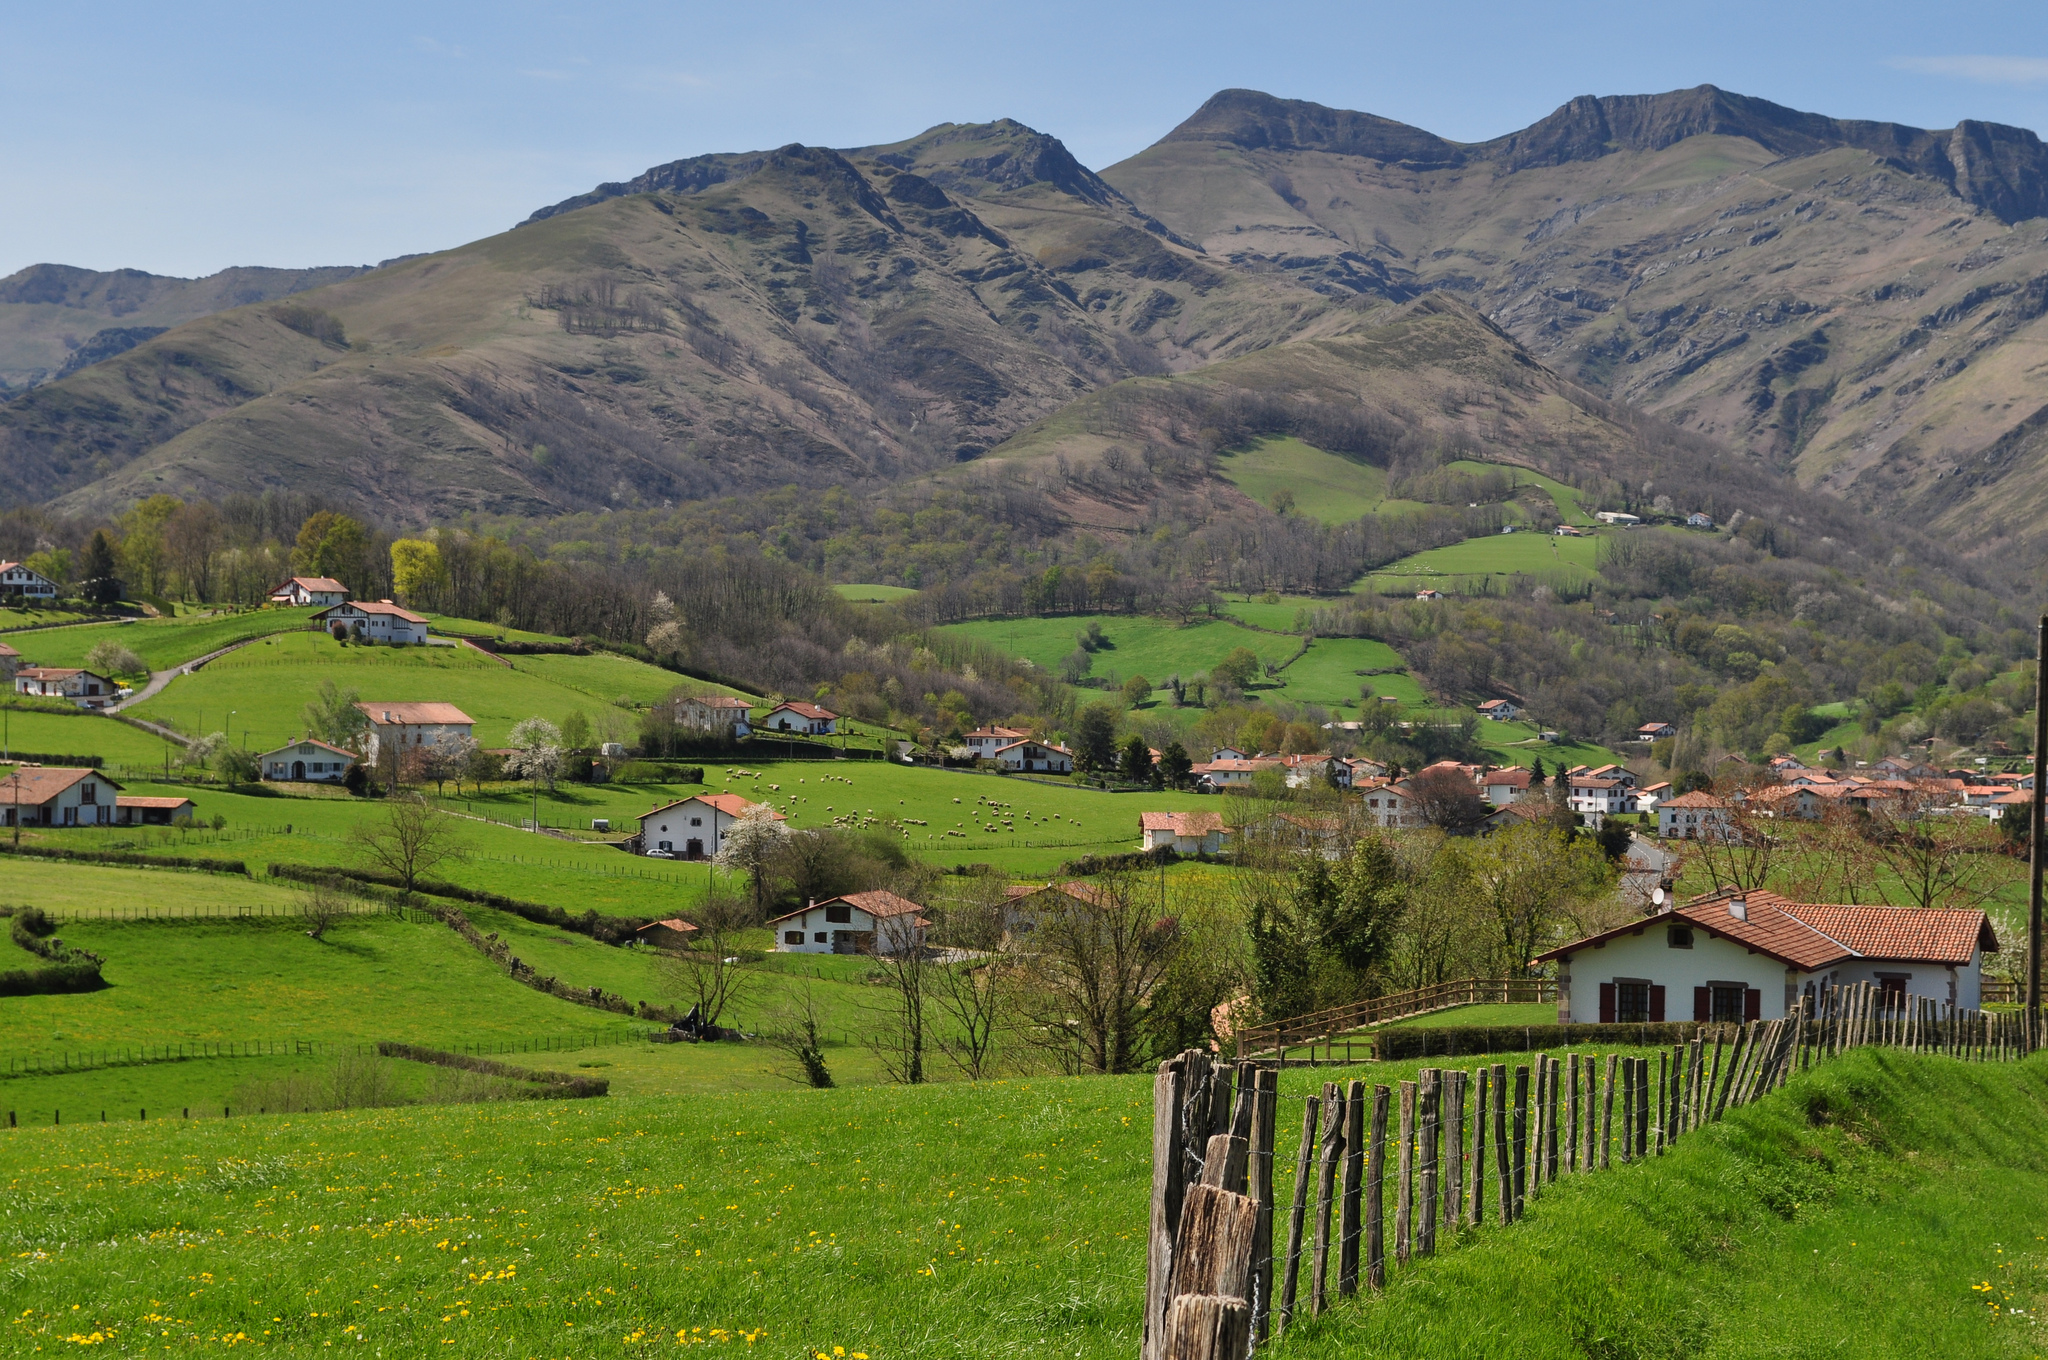 The Basque countryside near Saint-Etienne de Baïgorry, Basse-Navarre, France